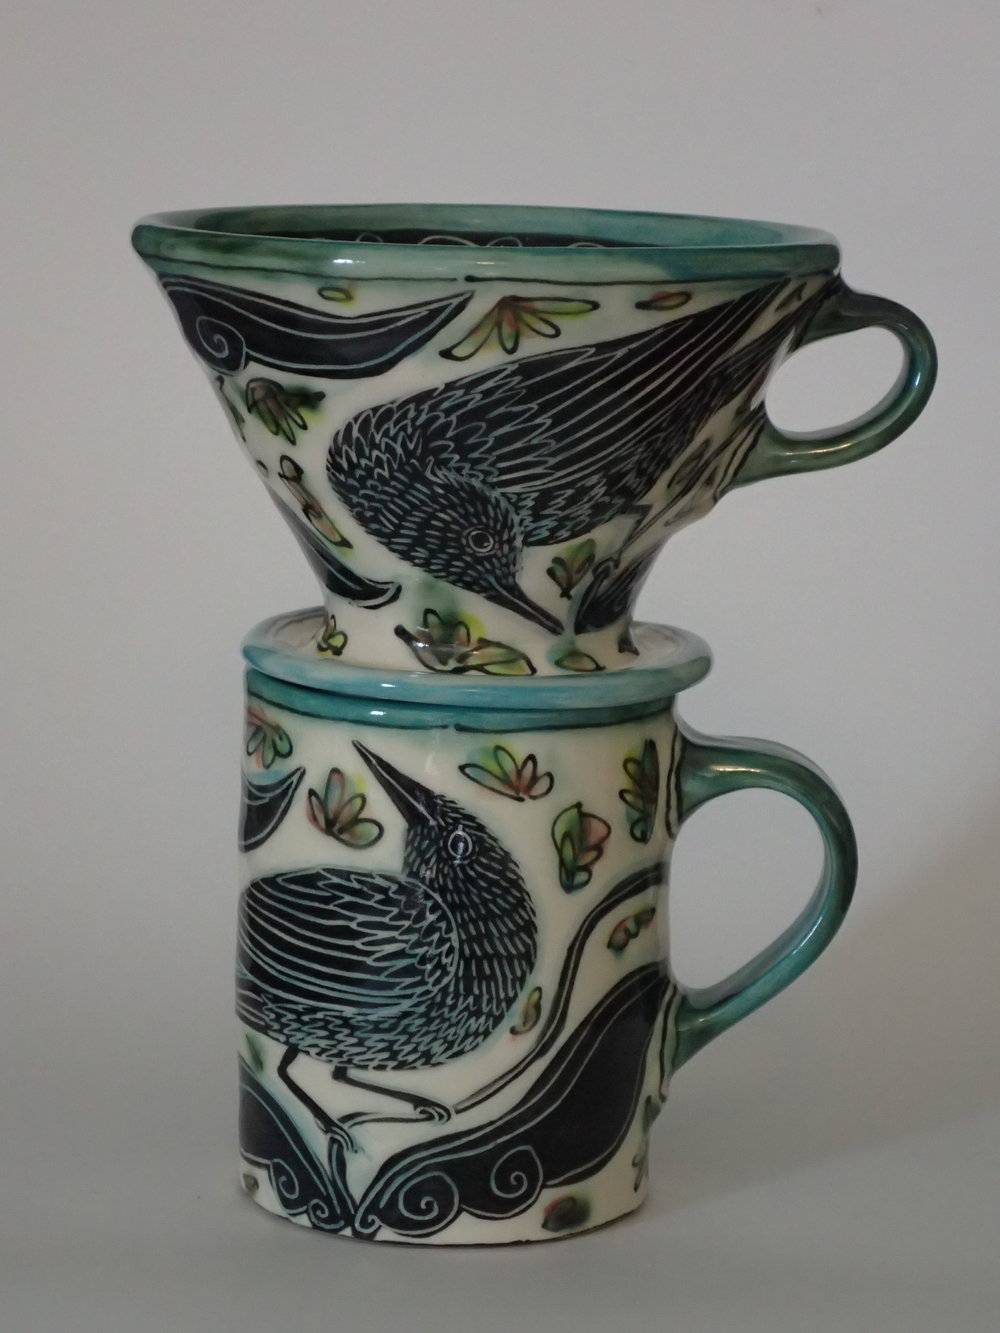 Bird Coffee Mug and Filter - Debra Kuzyk/Ray Mackie